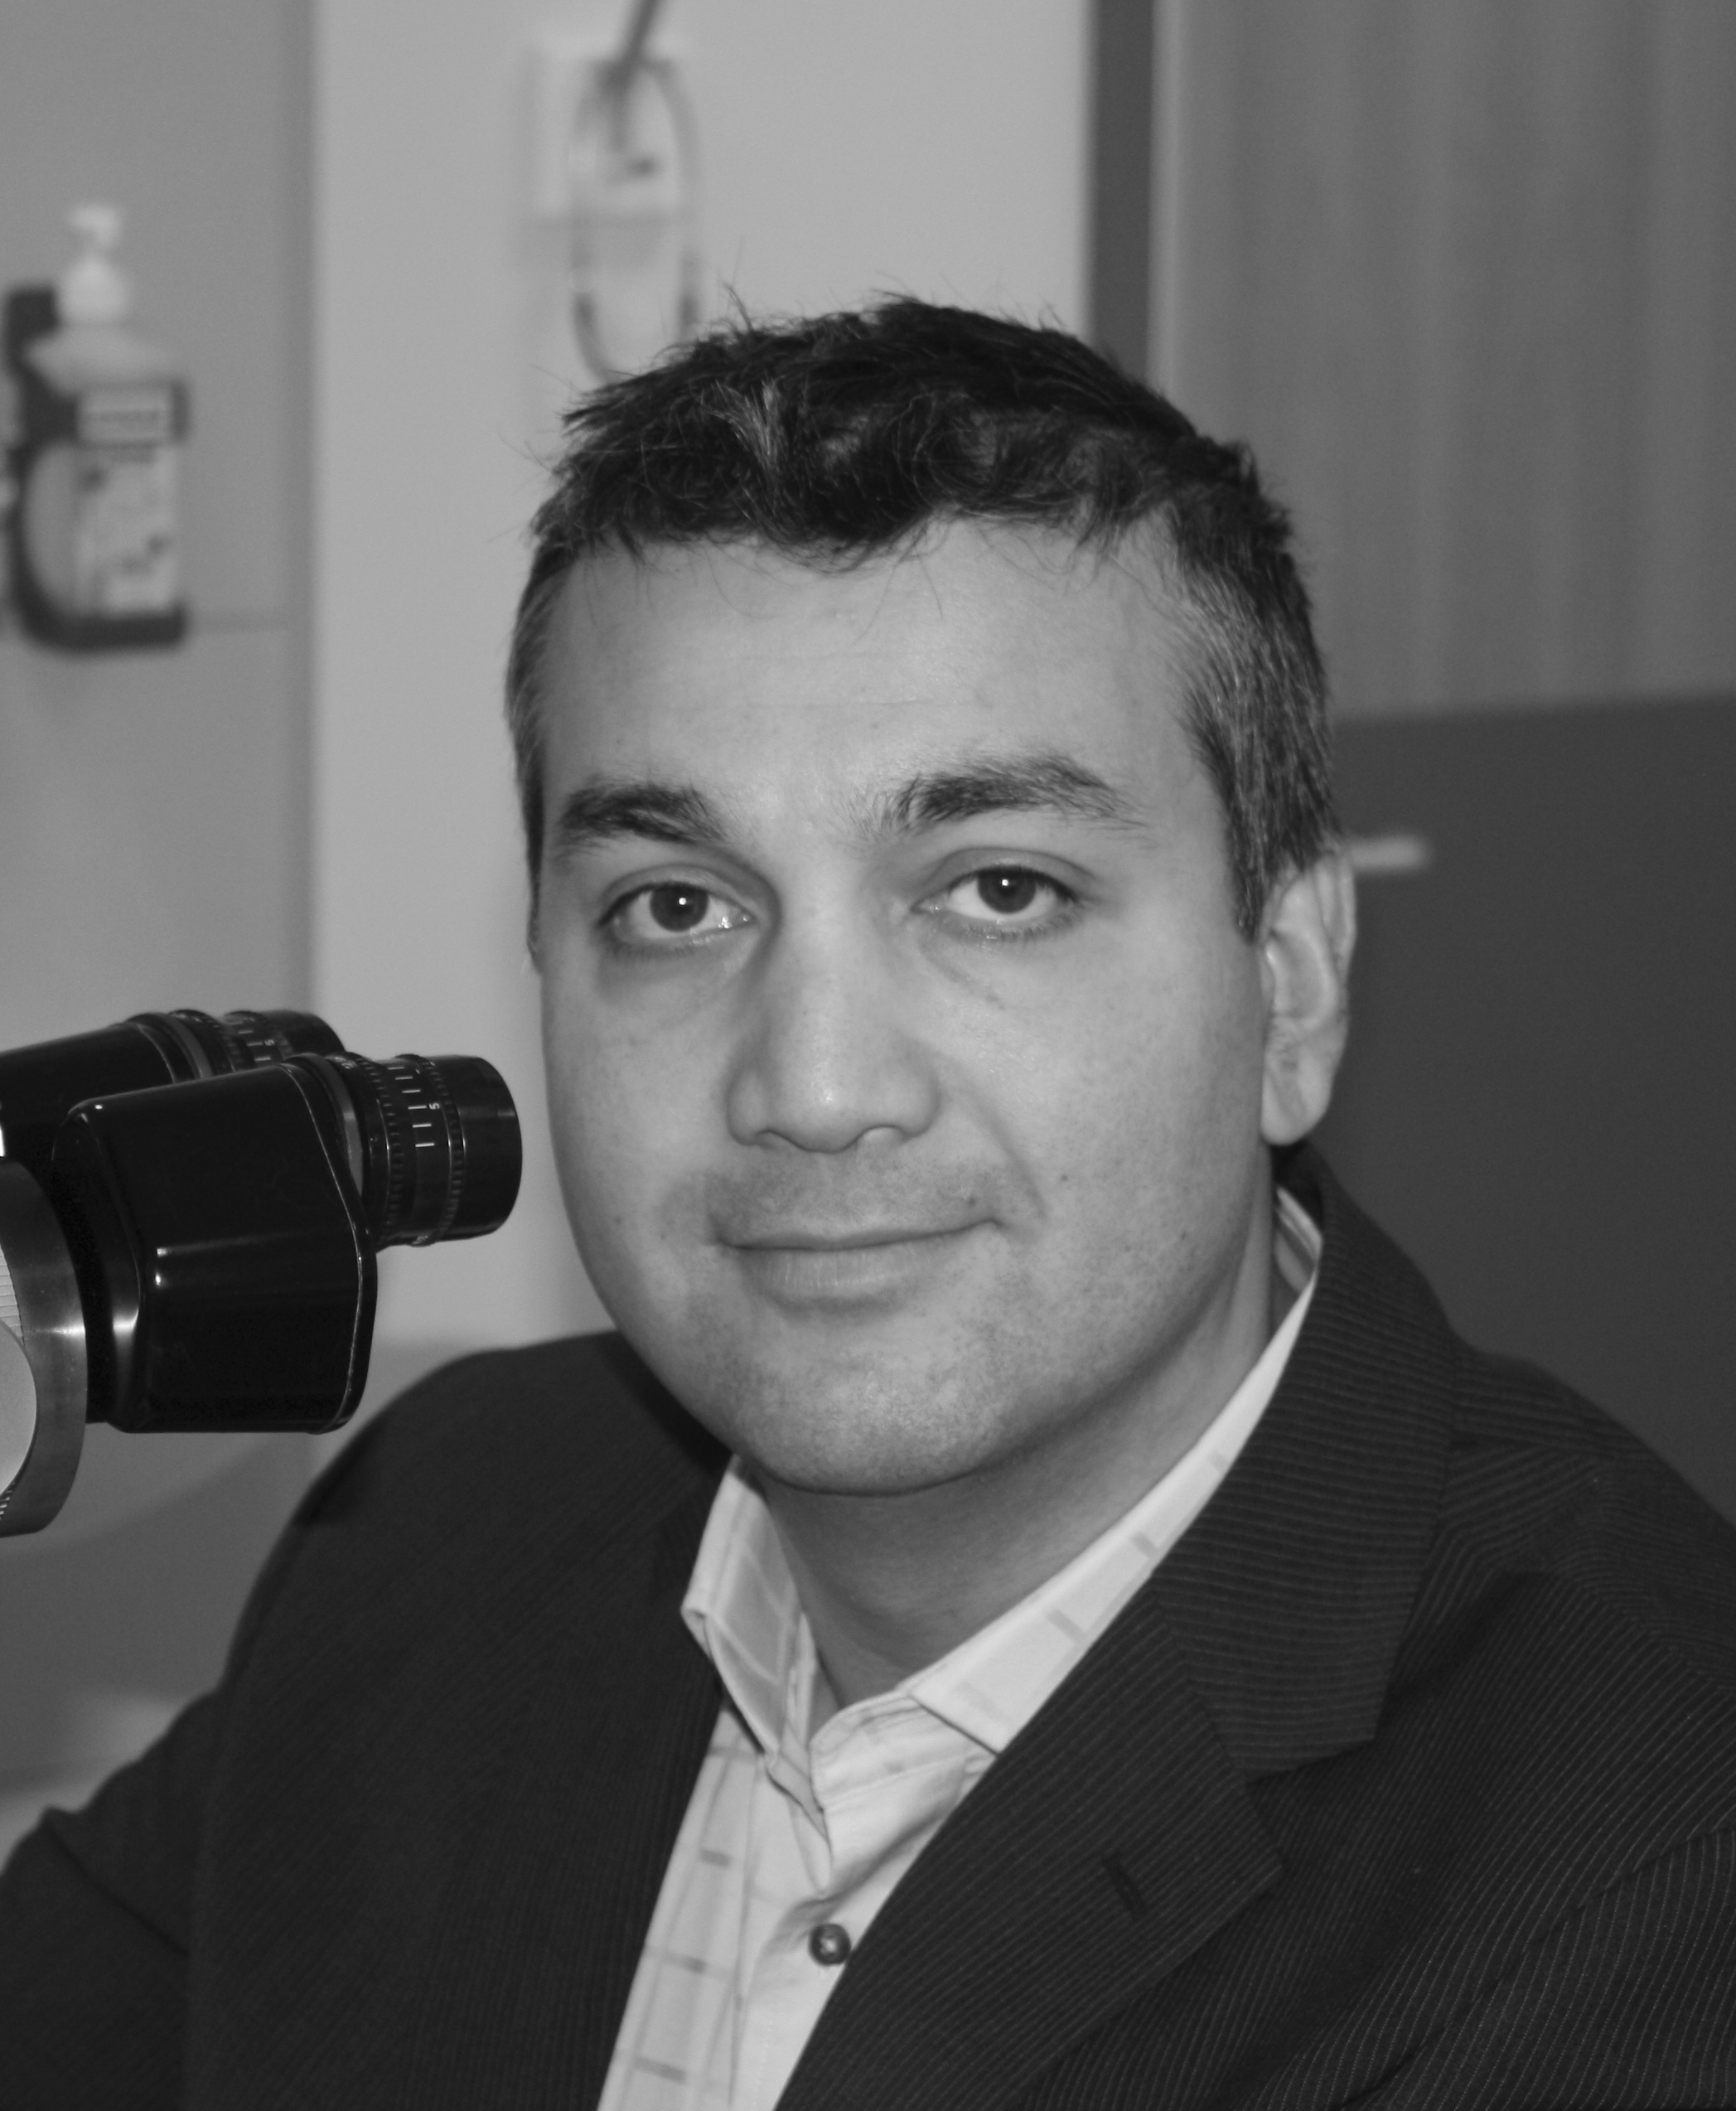 Amar Alwitry is a 